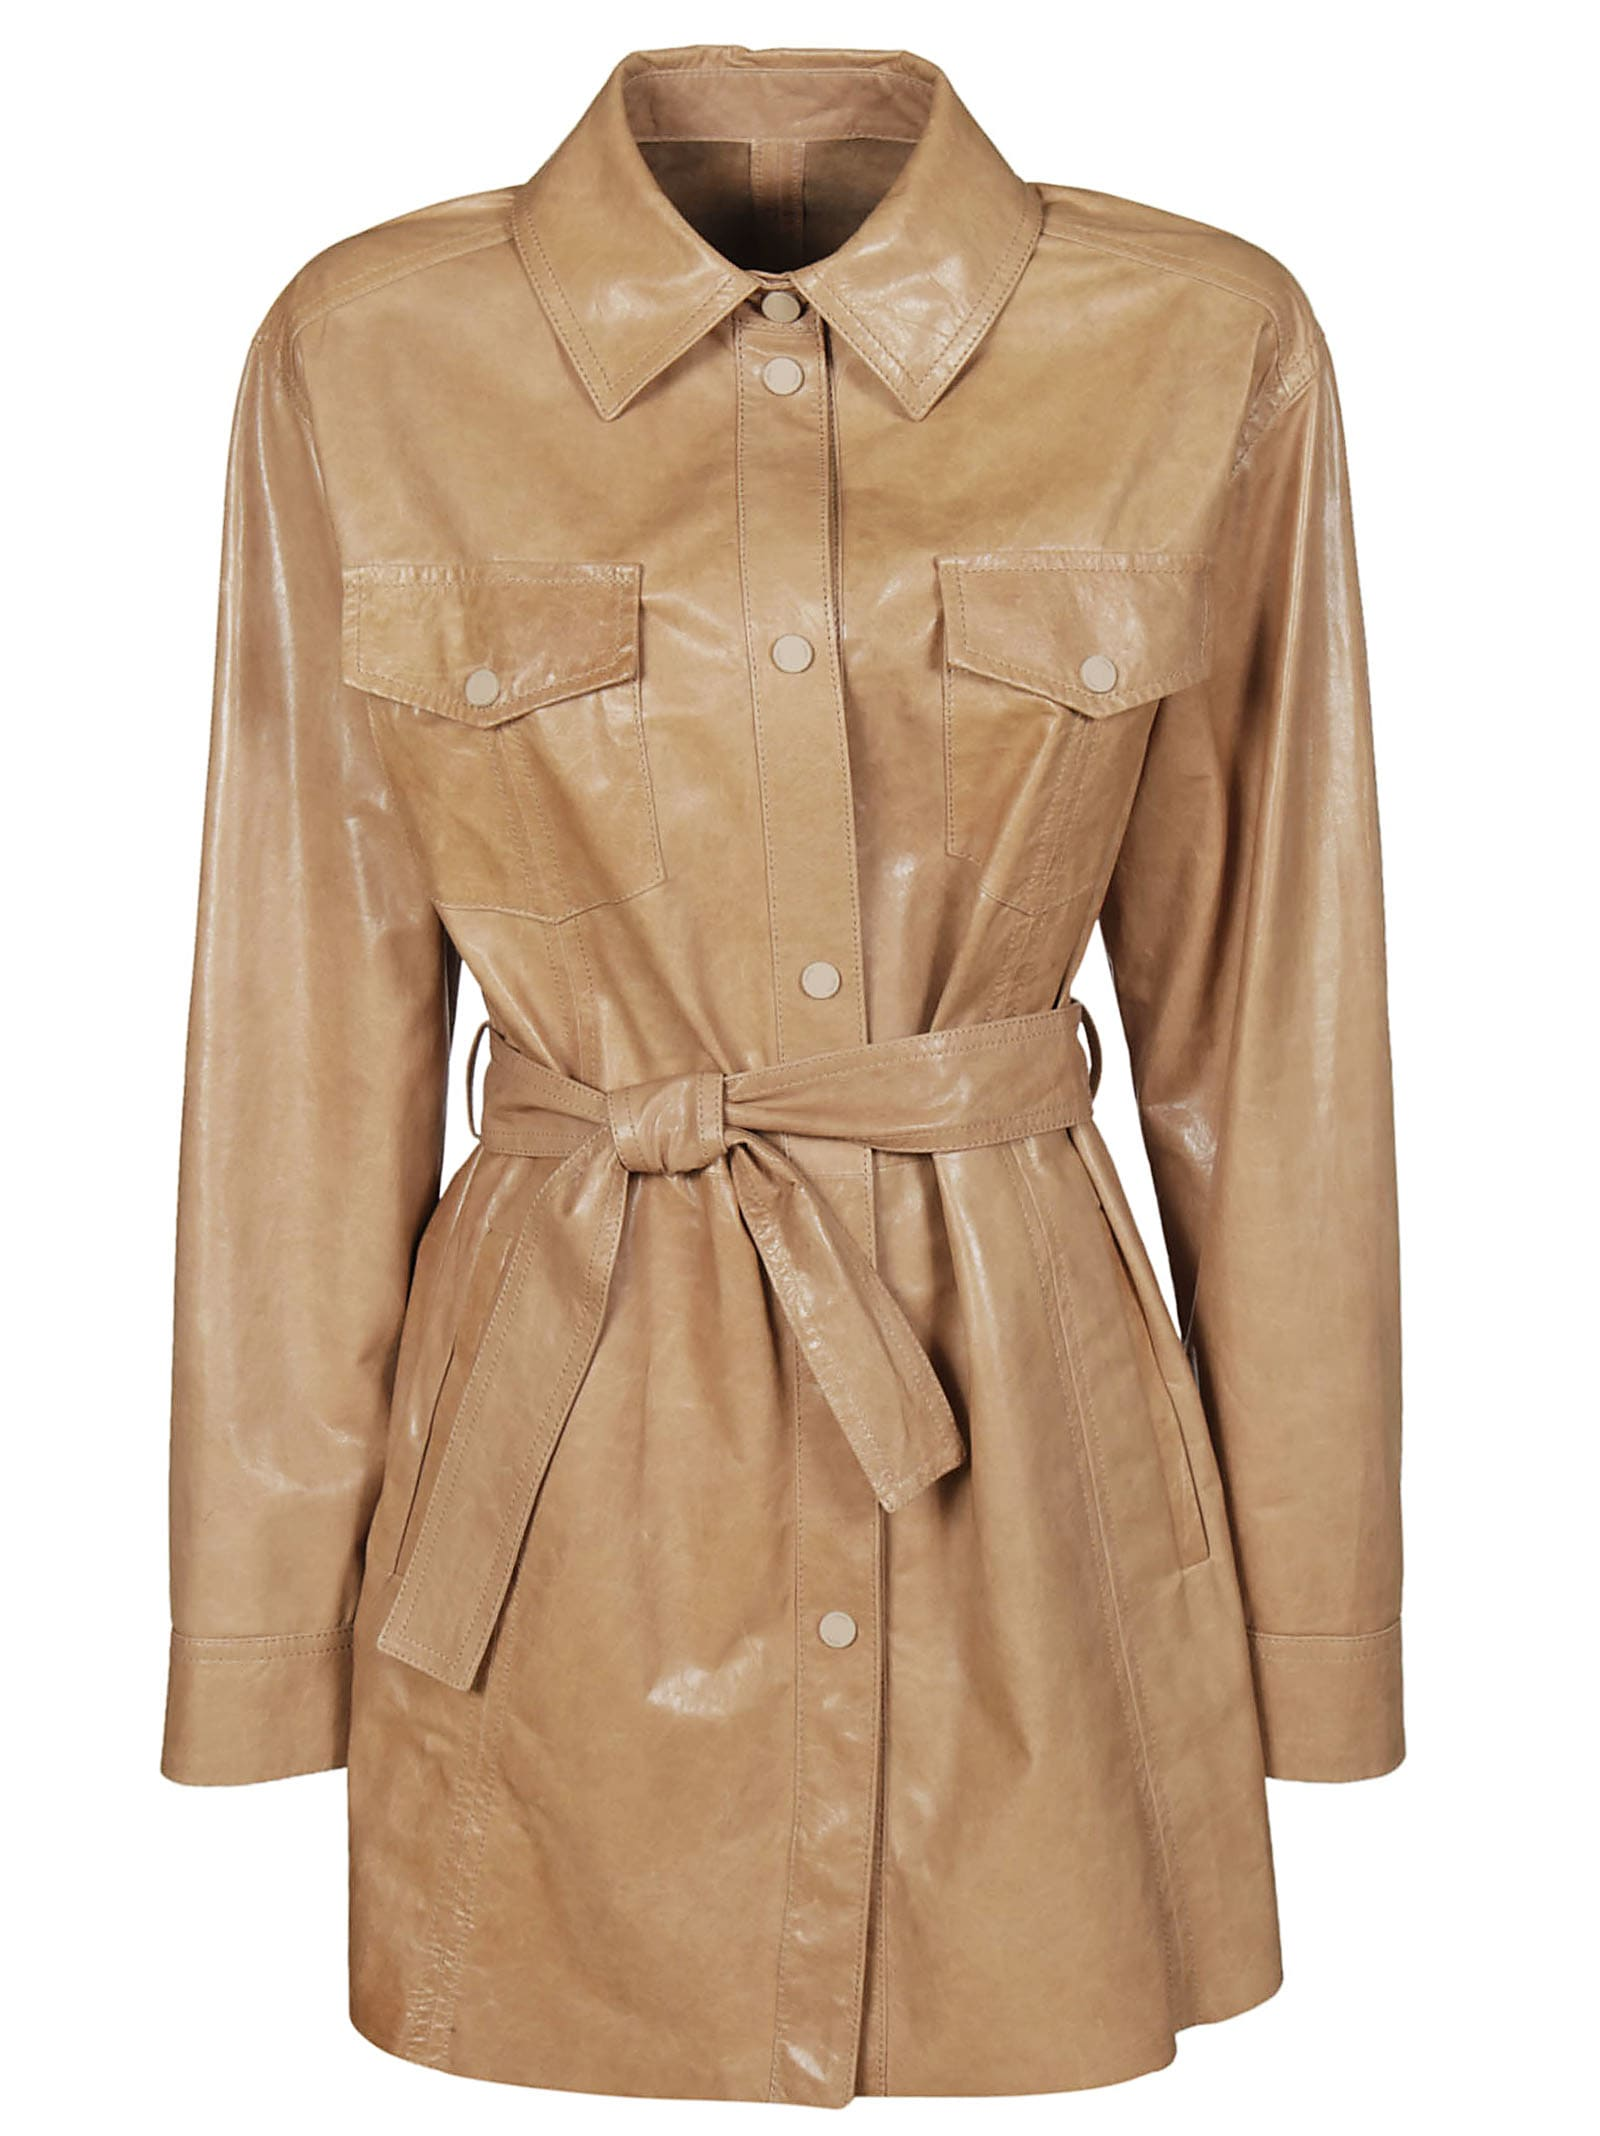 DROMe Belted Shirt Jacket